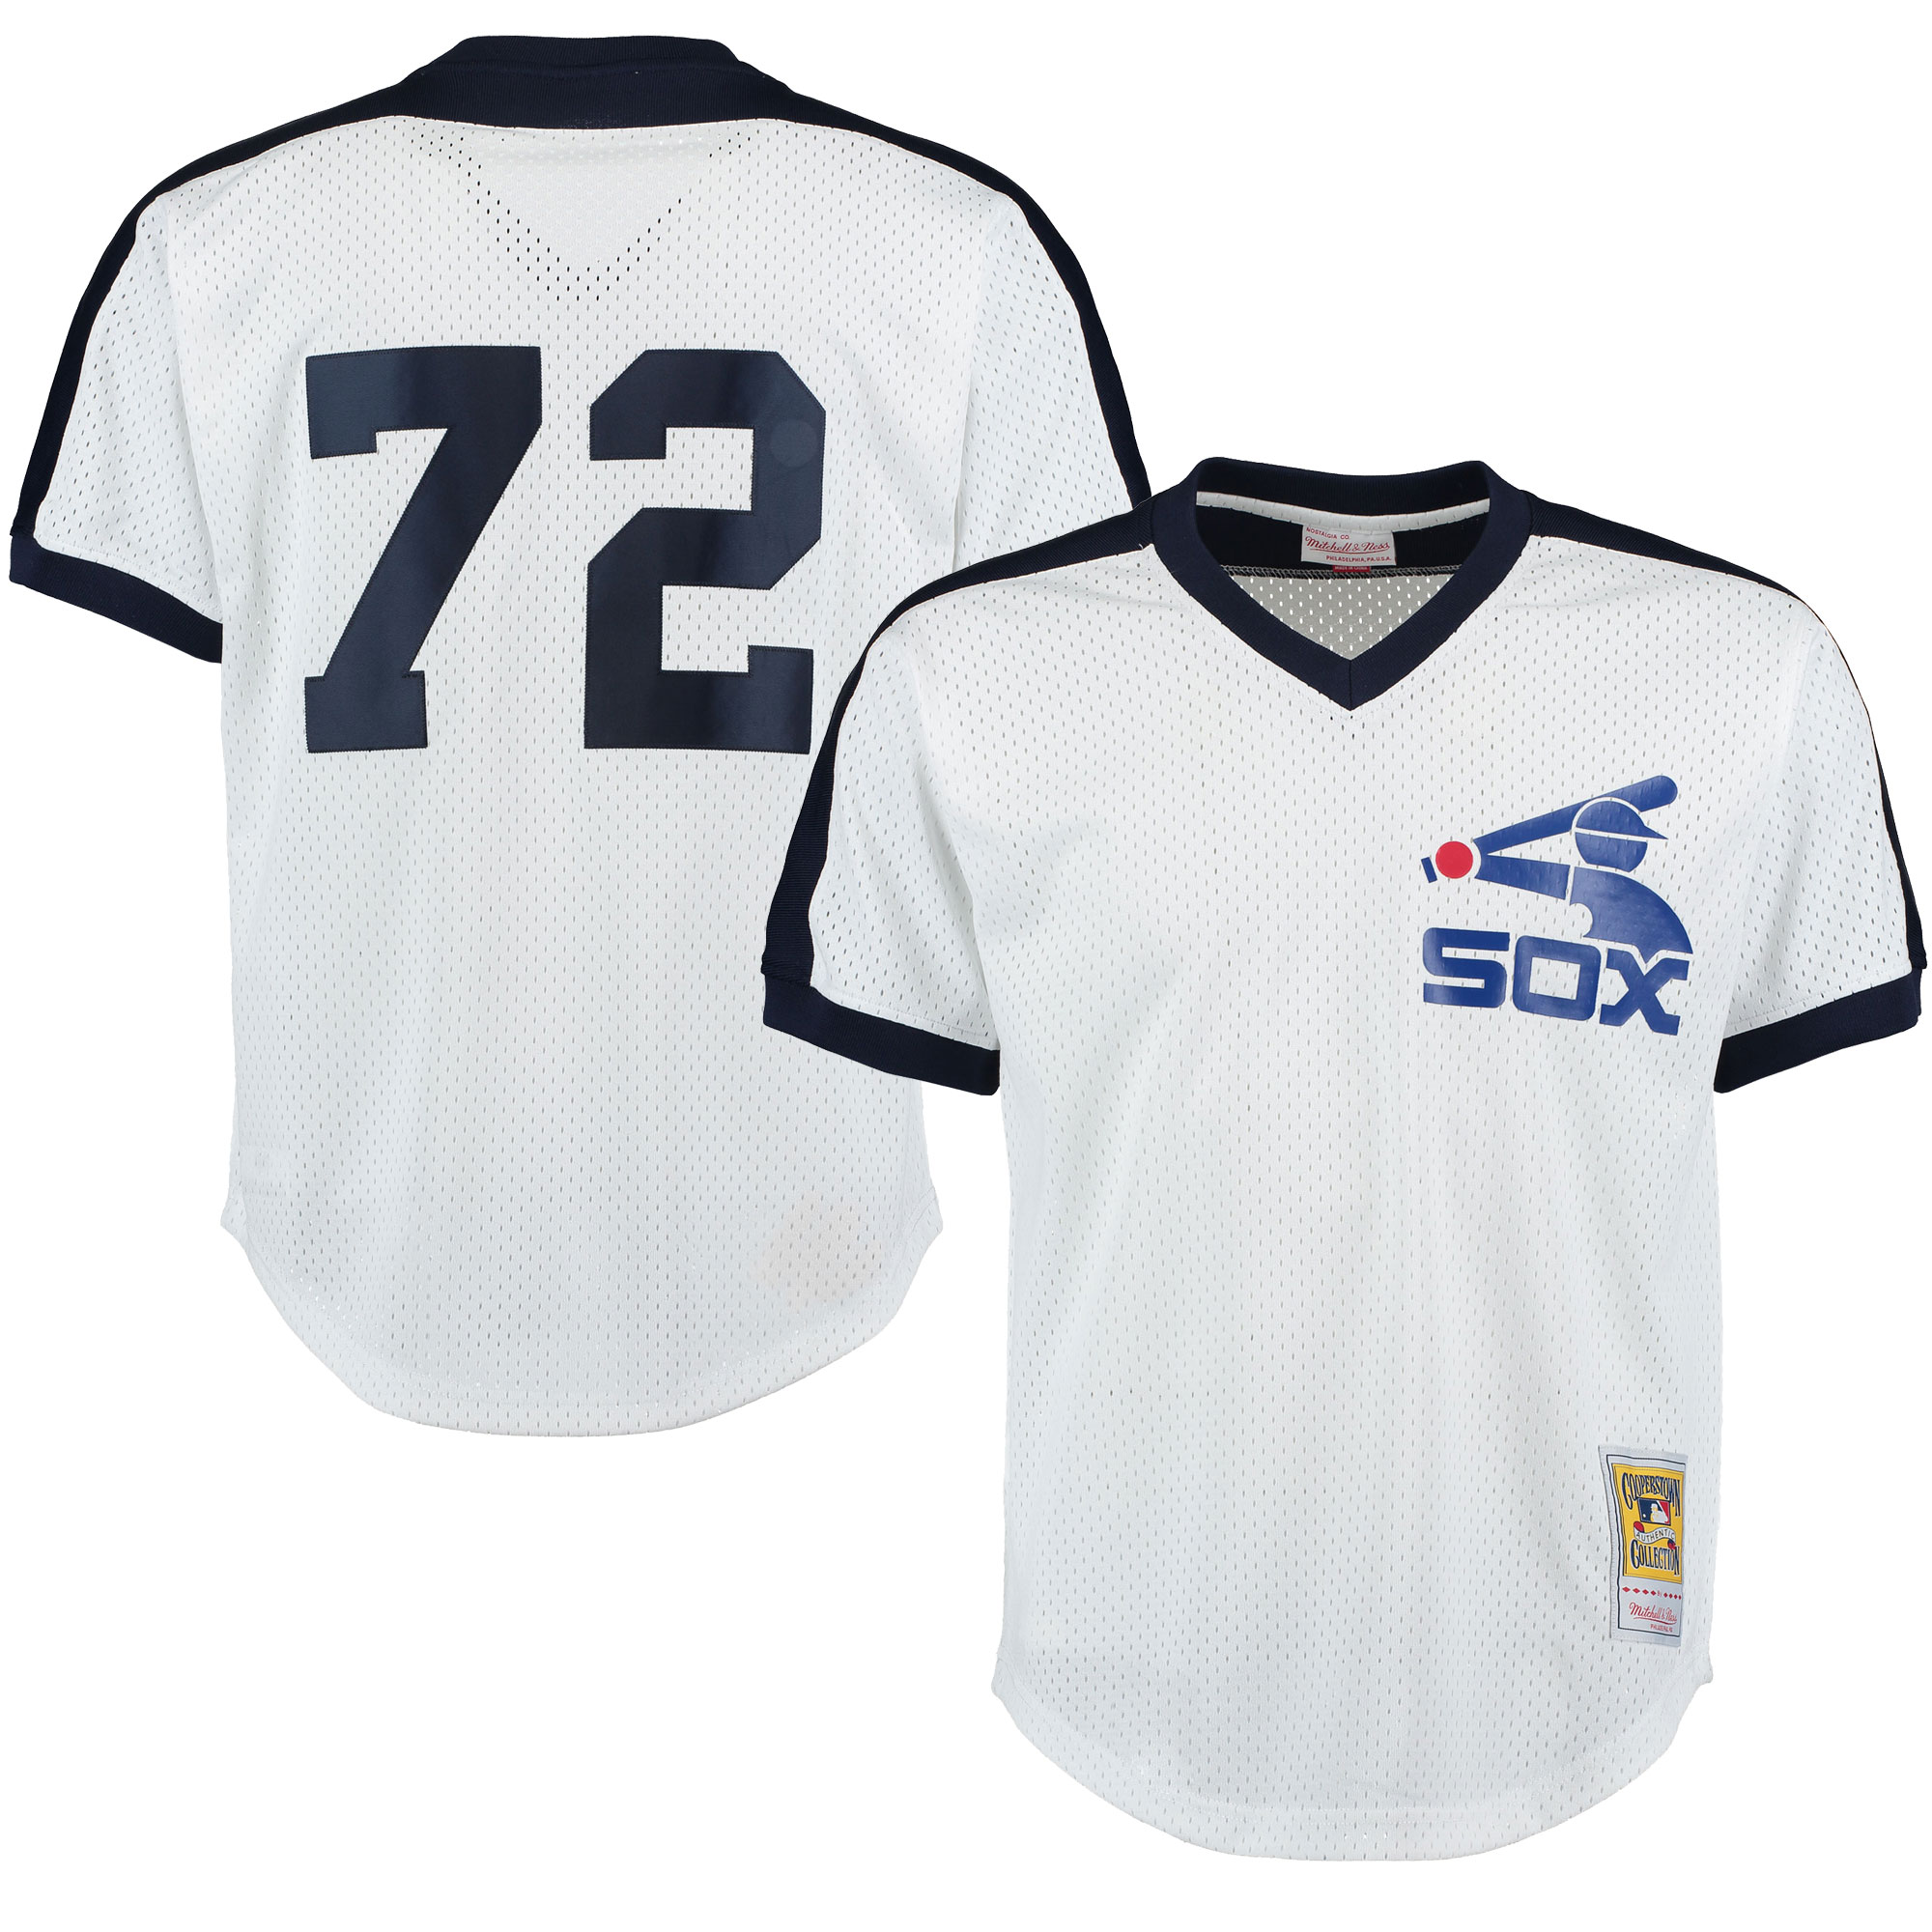 Carlton Fisk Chicago White Sox Mitchell & Ness Cooperstown Mesh Batting Practice Jersey - White